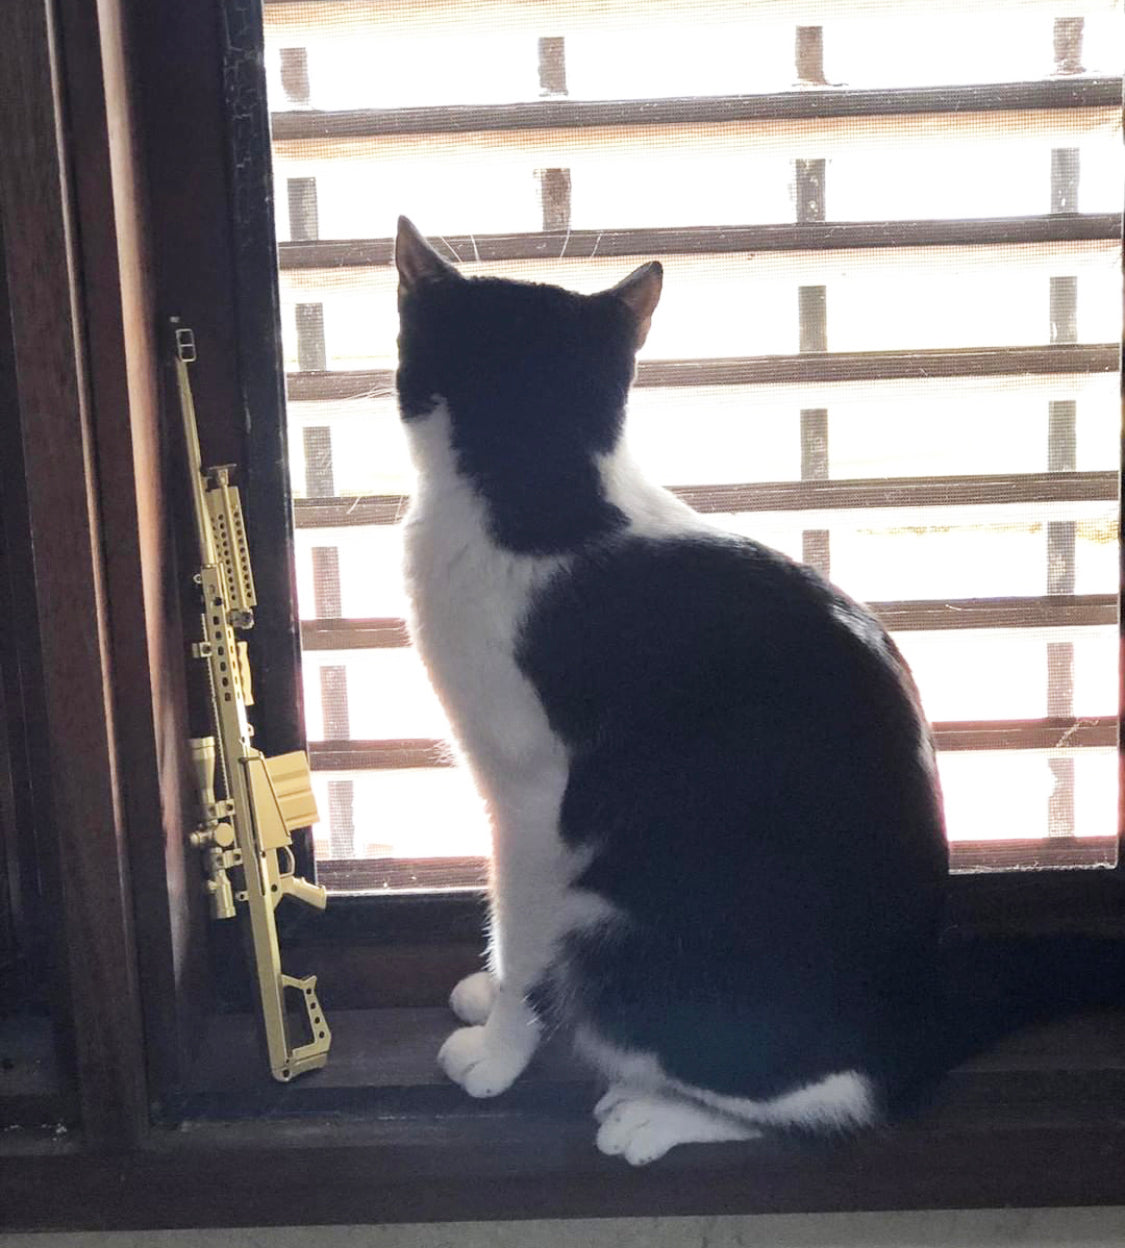 Cat looking out window with mini .50 cal by it